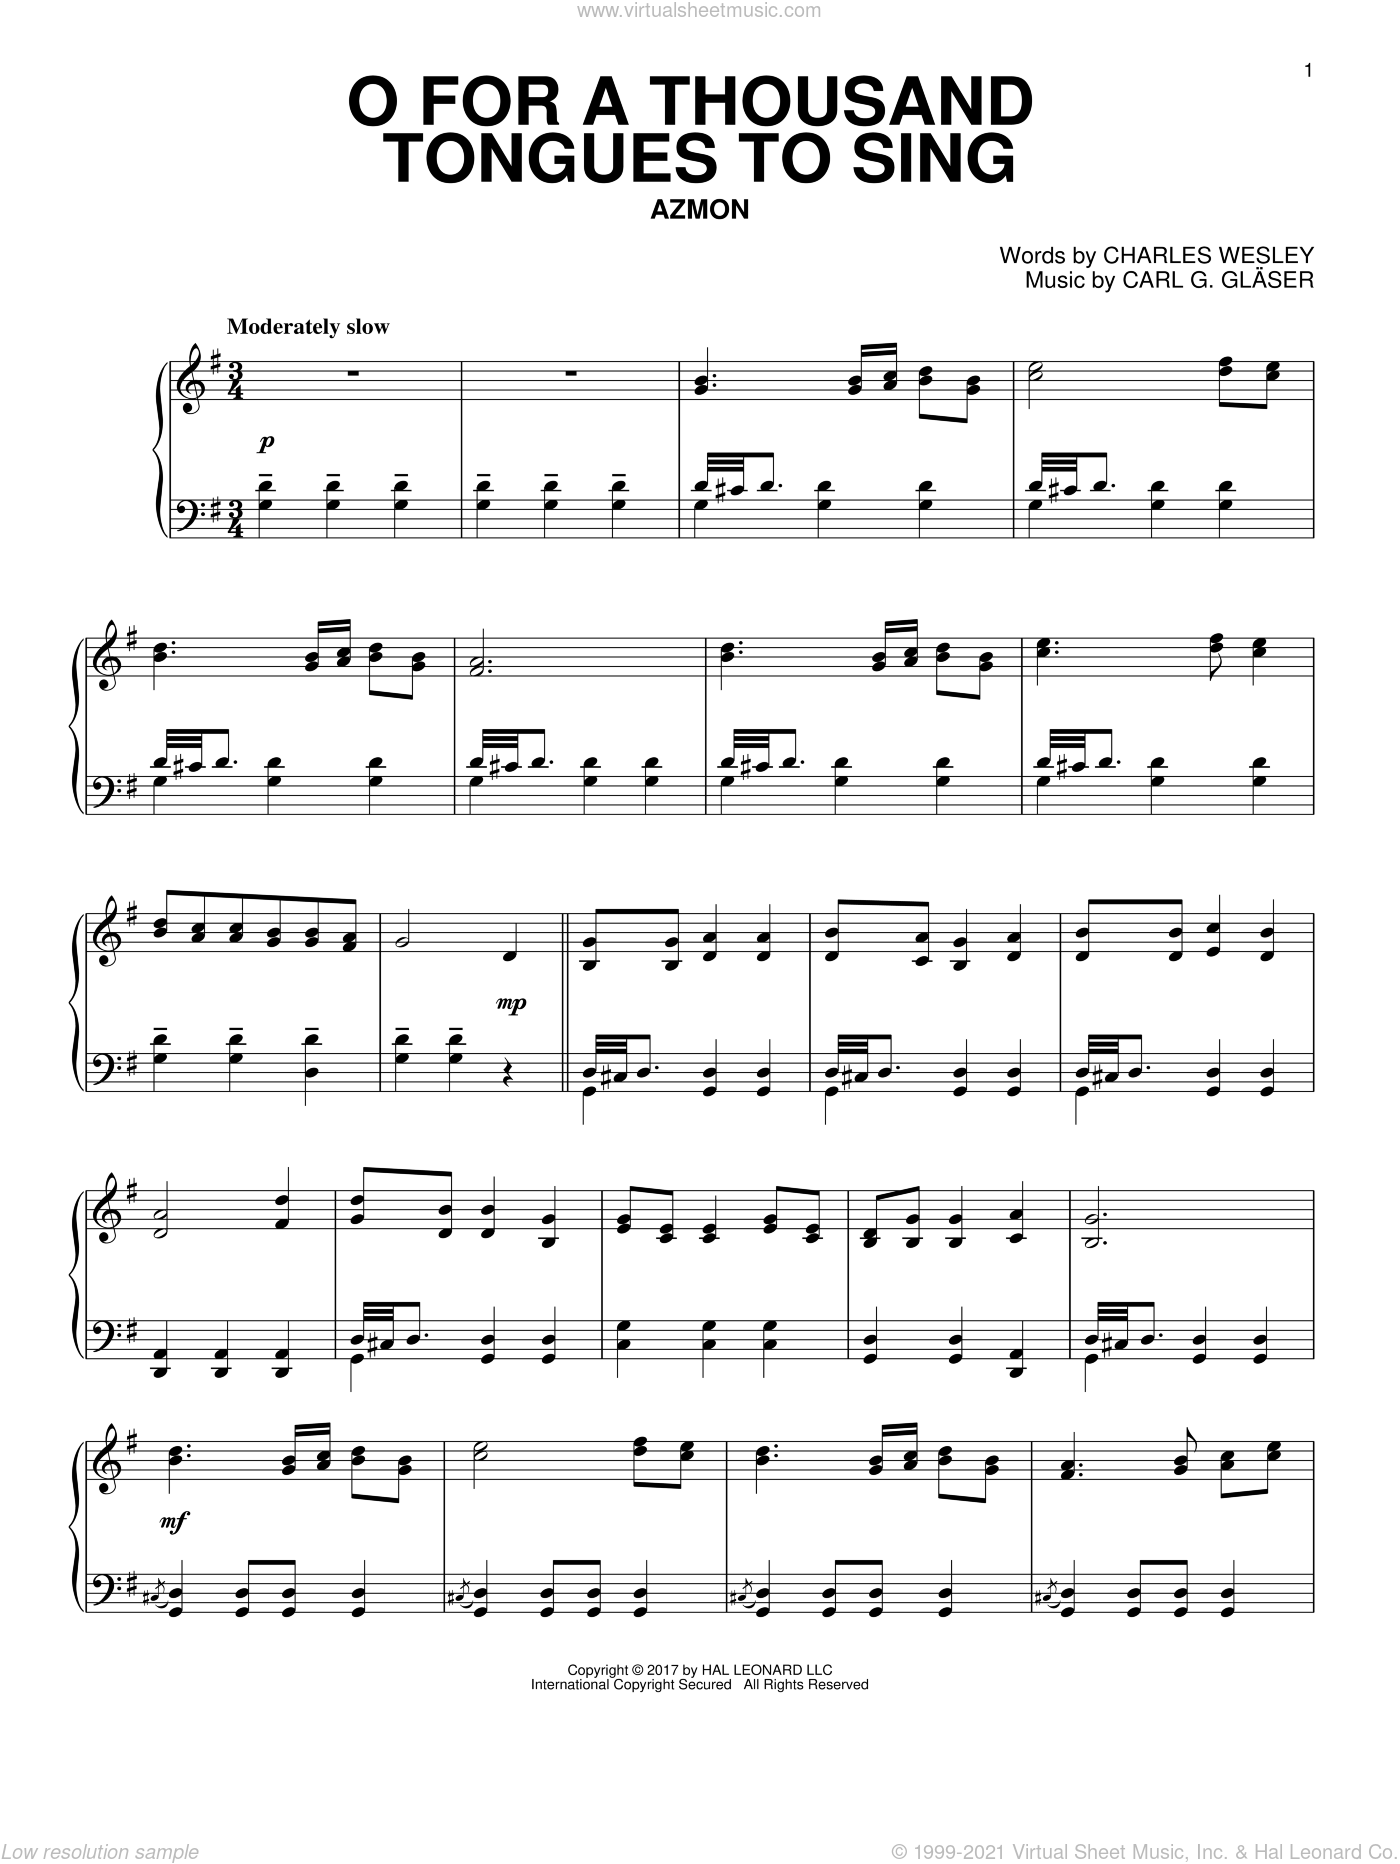 O For A Thousand Tongues To Sing sheet music for piano solo by Charles Wesley, Carl G. Glaser, Carl G. Glaser and Lowell Mason, intermediate skill level